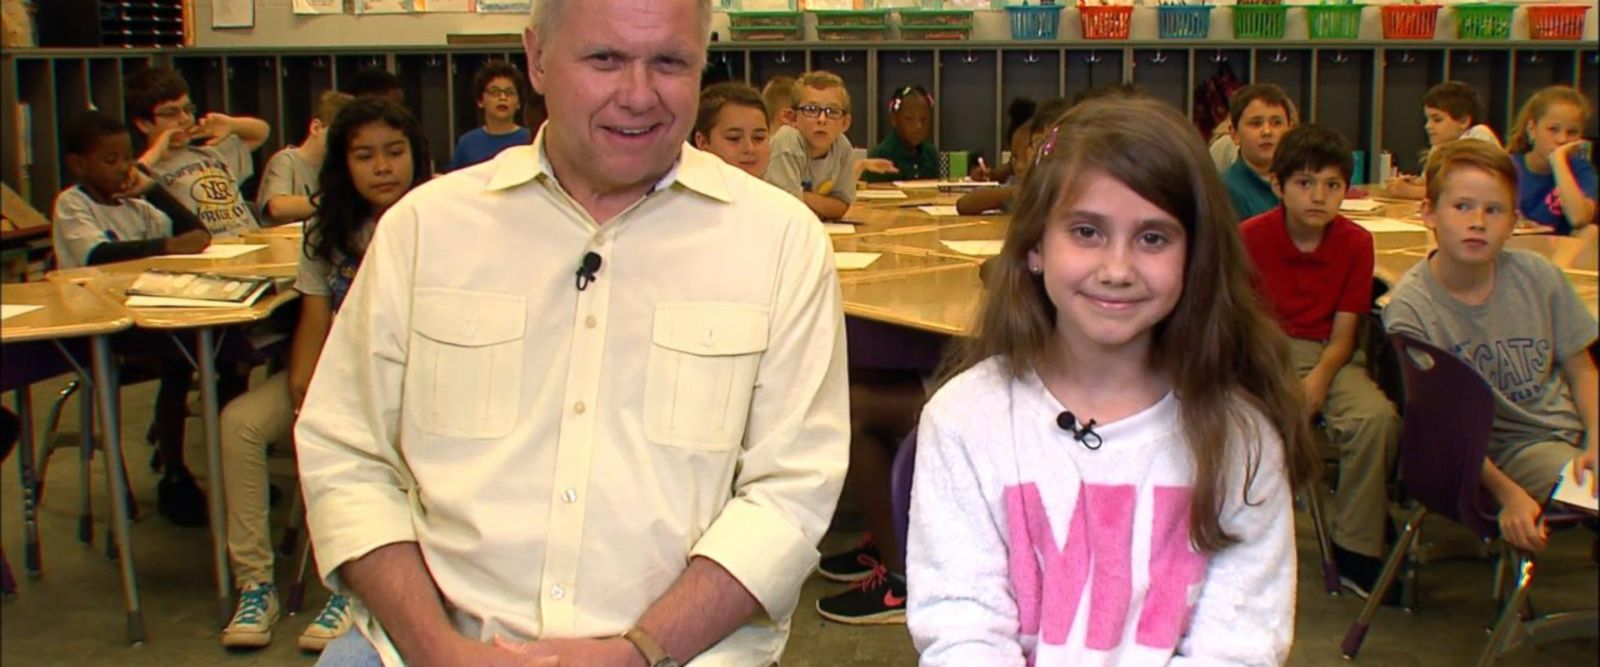 VIDEO: 3rd grader whose talent show performance went viral appears on GMA